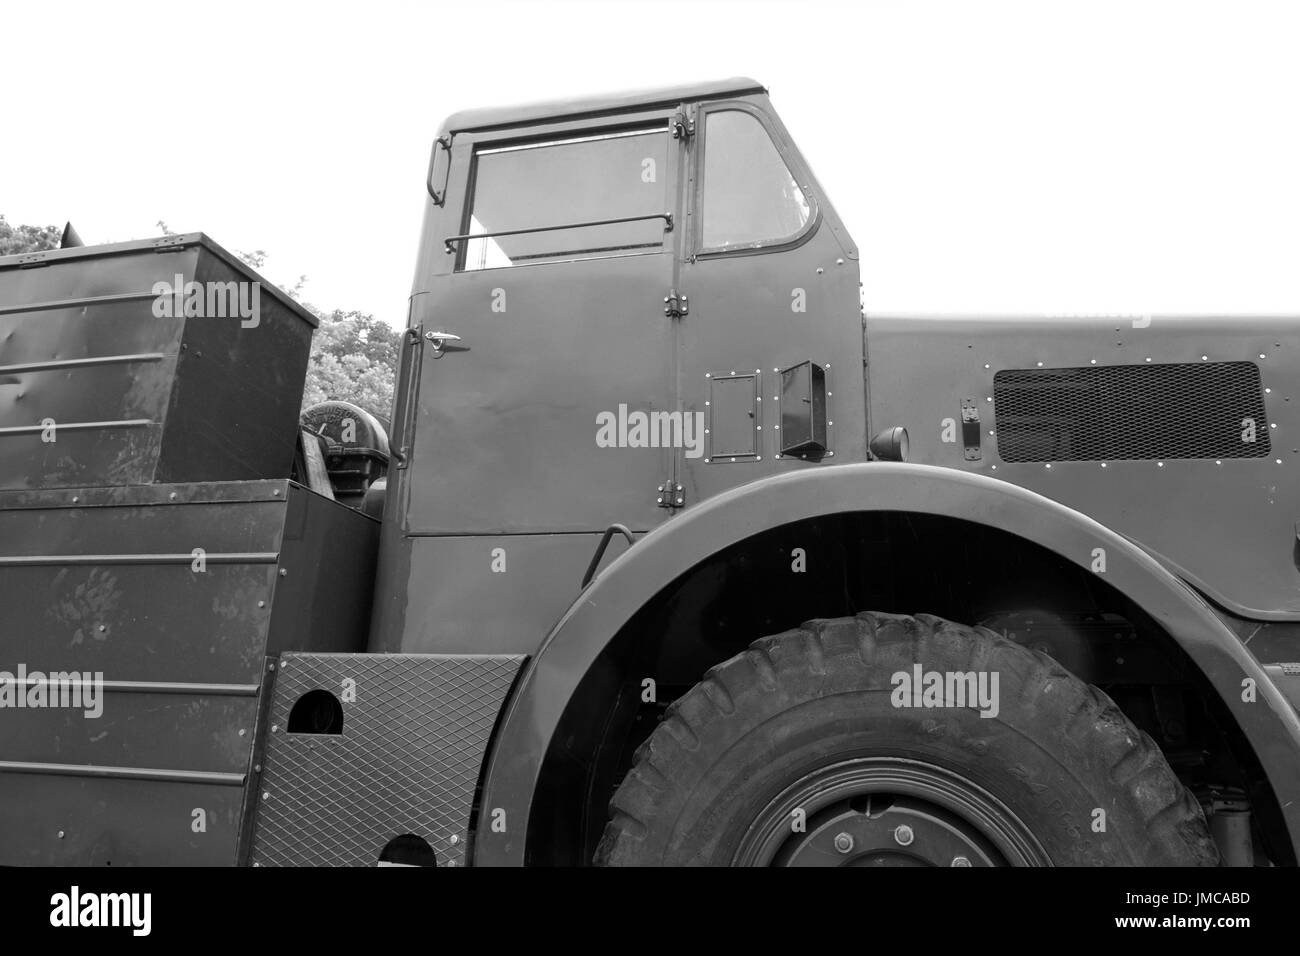 26thJuly 2017 - British Army Thronycroft Mighty Antar MkII, a restored version at the REME museum car park. - Stock Image